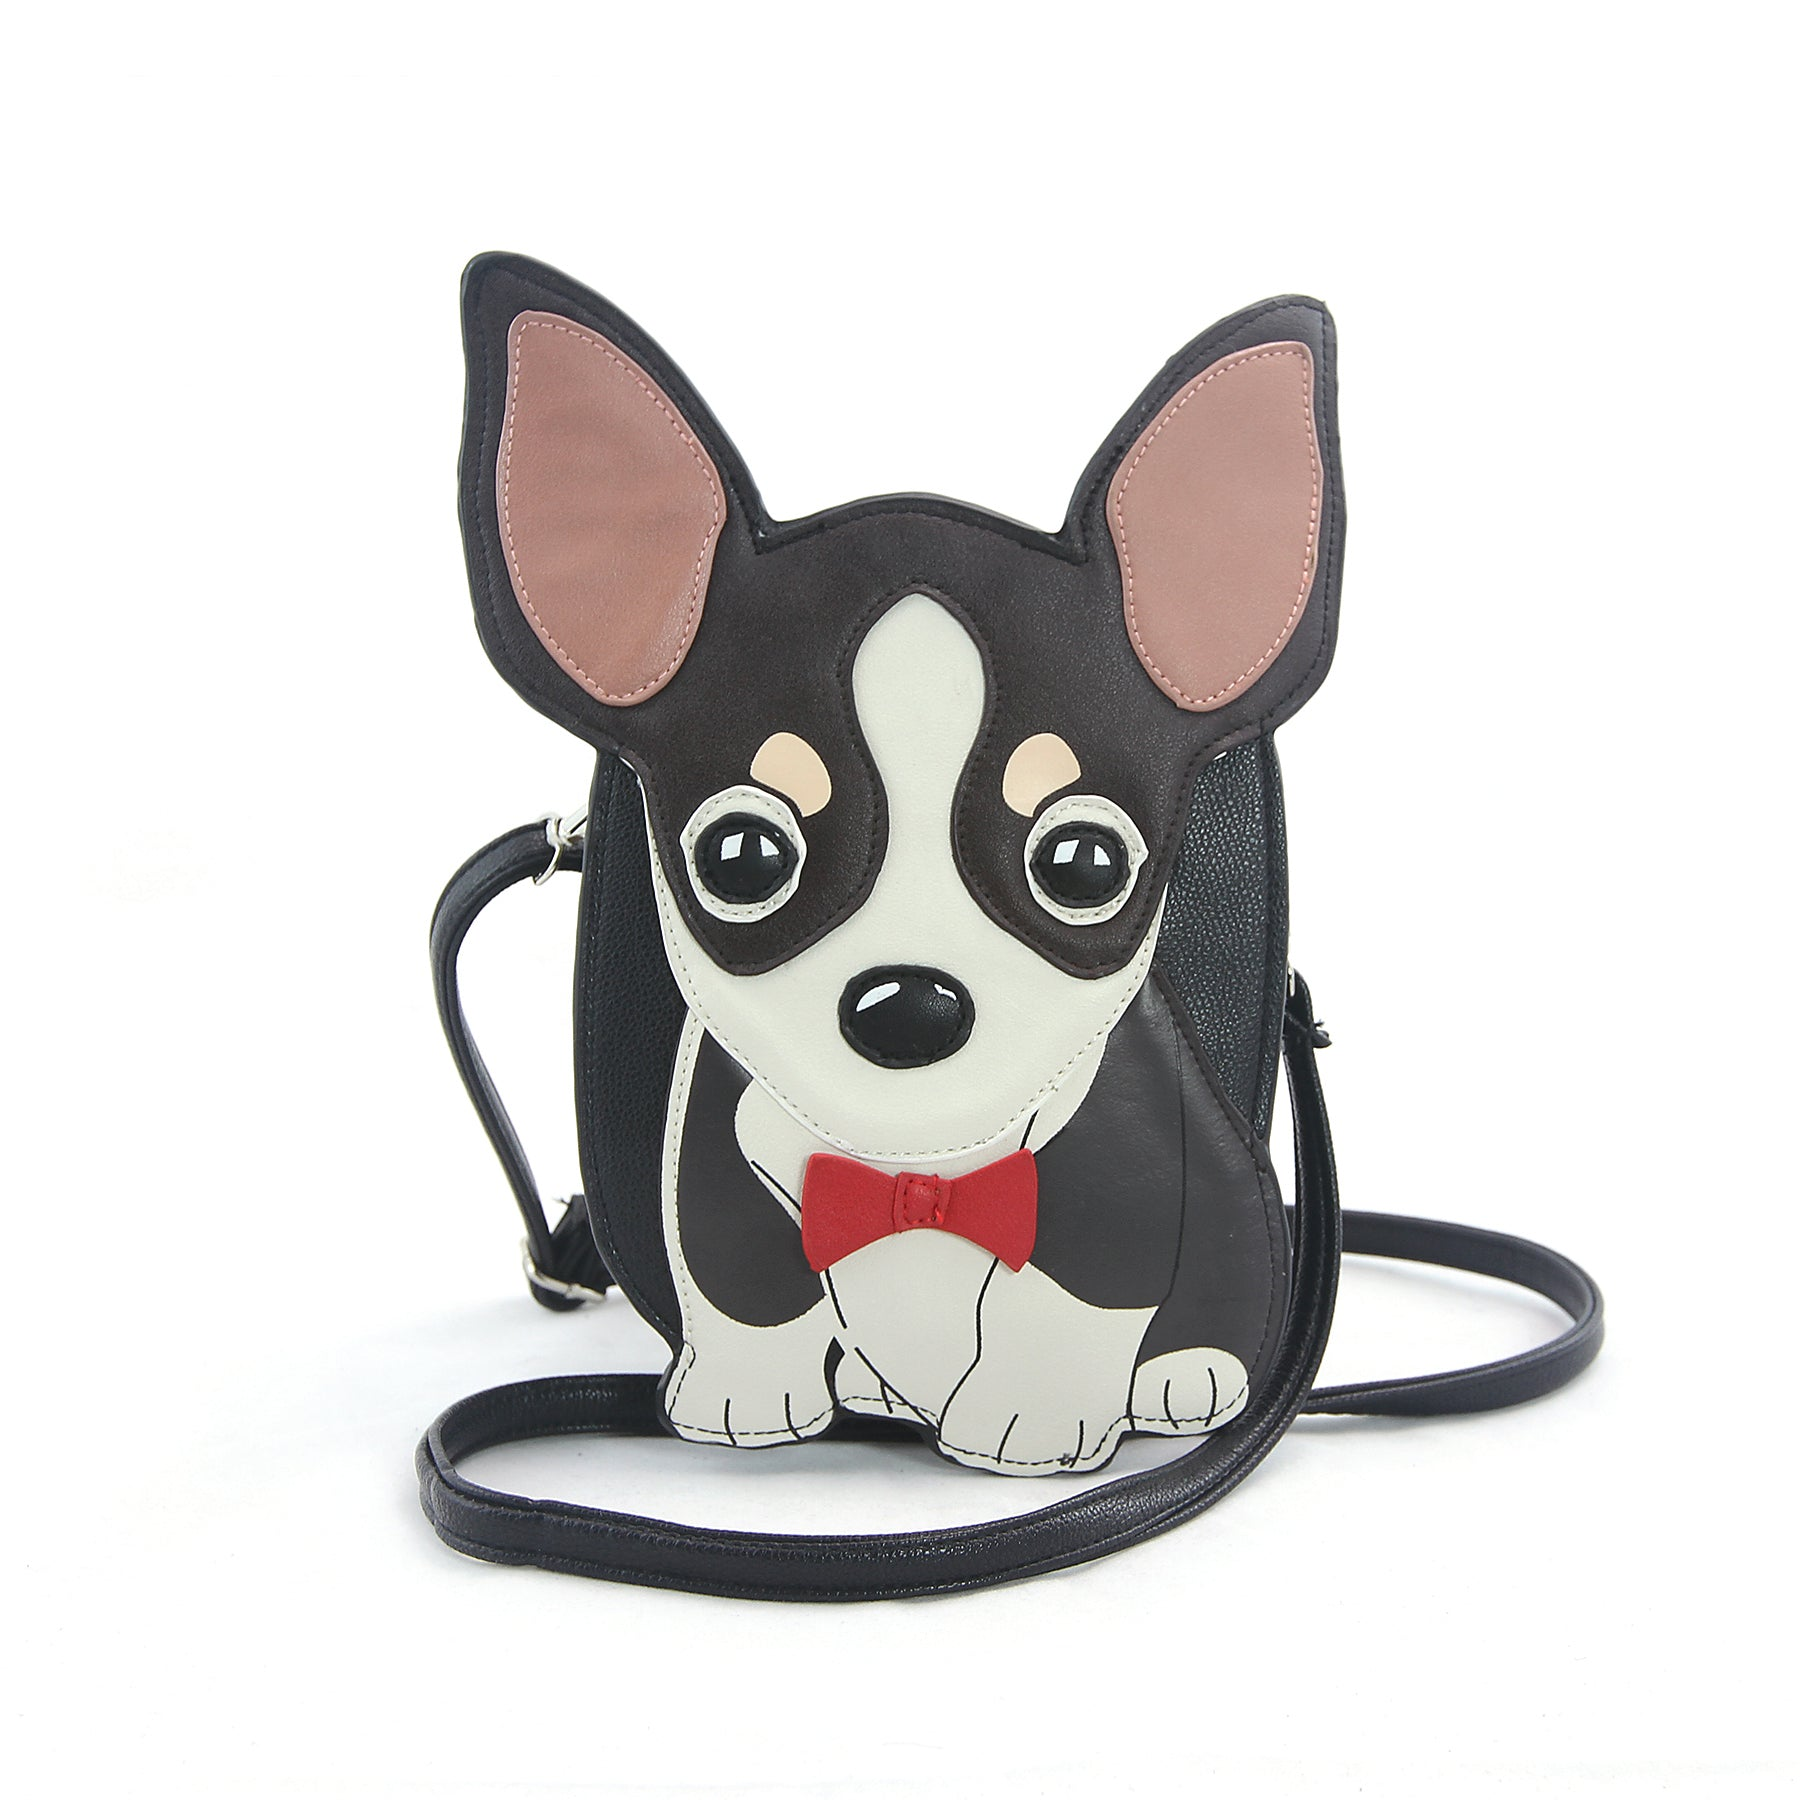 Sleepyville Critters - Chihuahua with Bow Tie Crossbody Bag in Vinyl Material front view